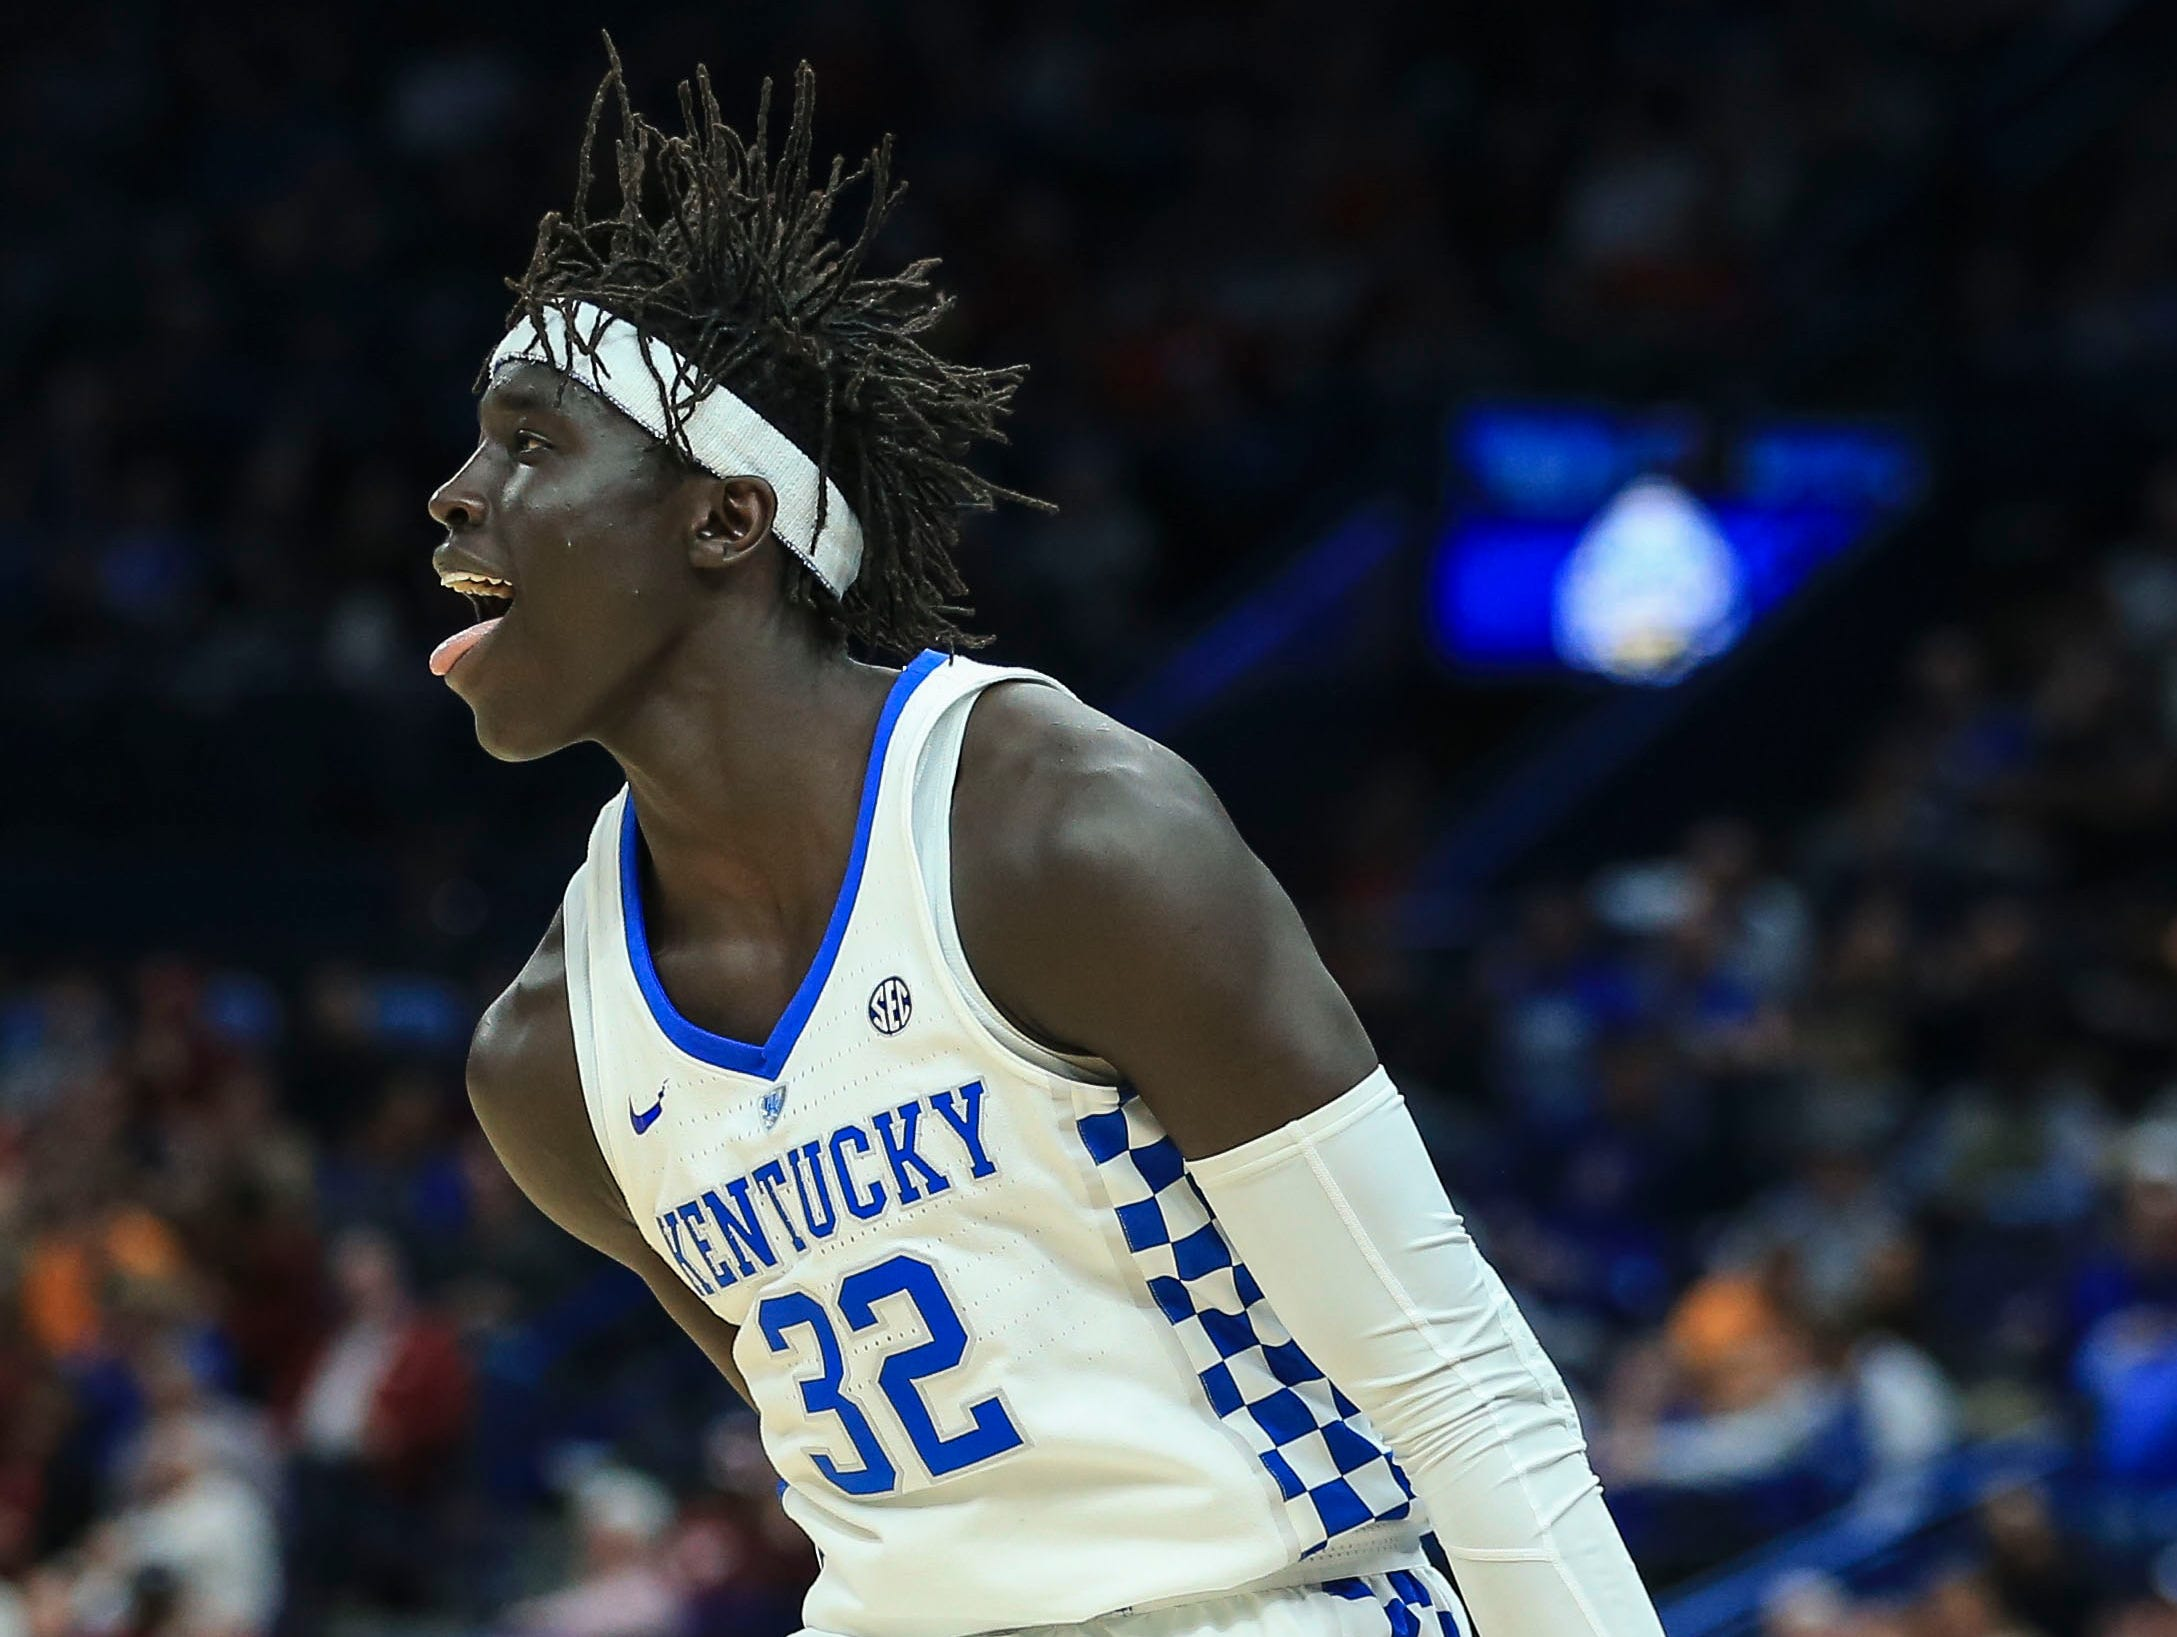 Kentucky's Wenyen Gabrial hit seven-for-seven three point shots against Alabama during Saturday's semifinal SEC Tournament game in St. Louis. He finished with career-high 23 points. March 10, 2018